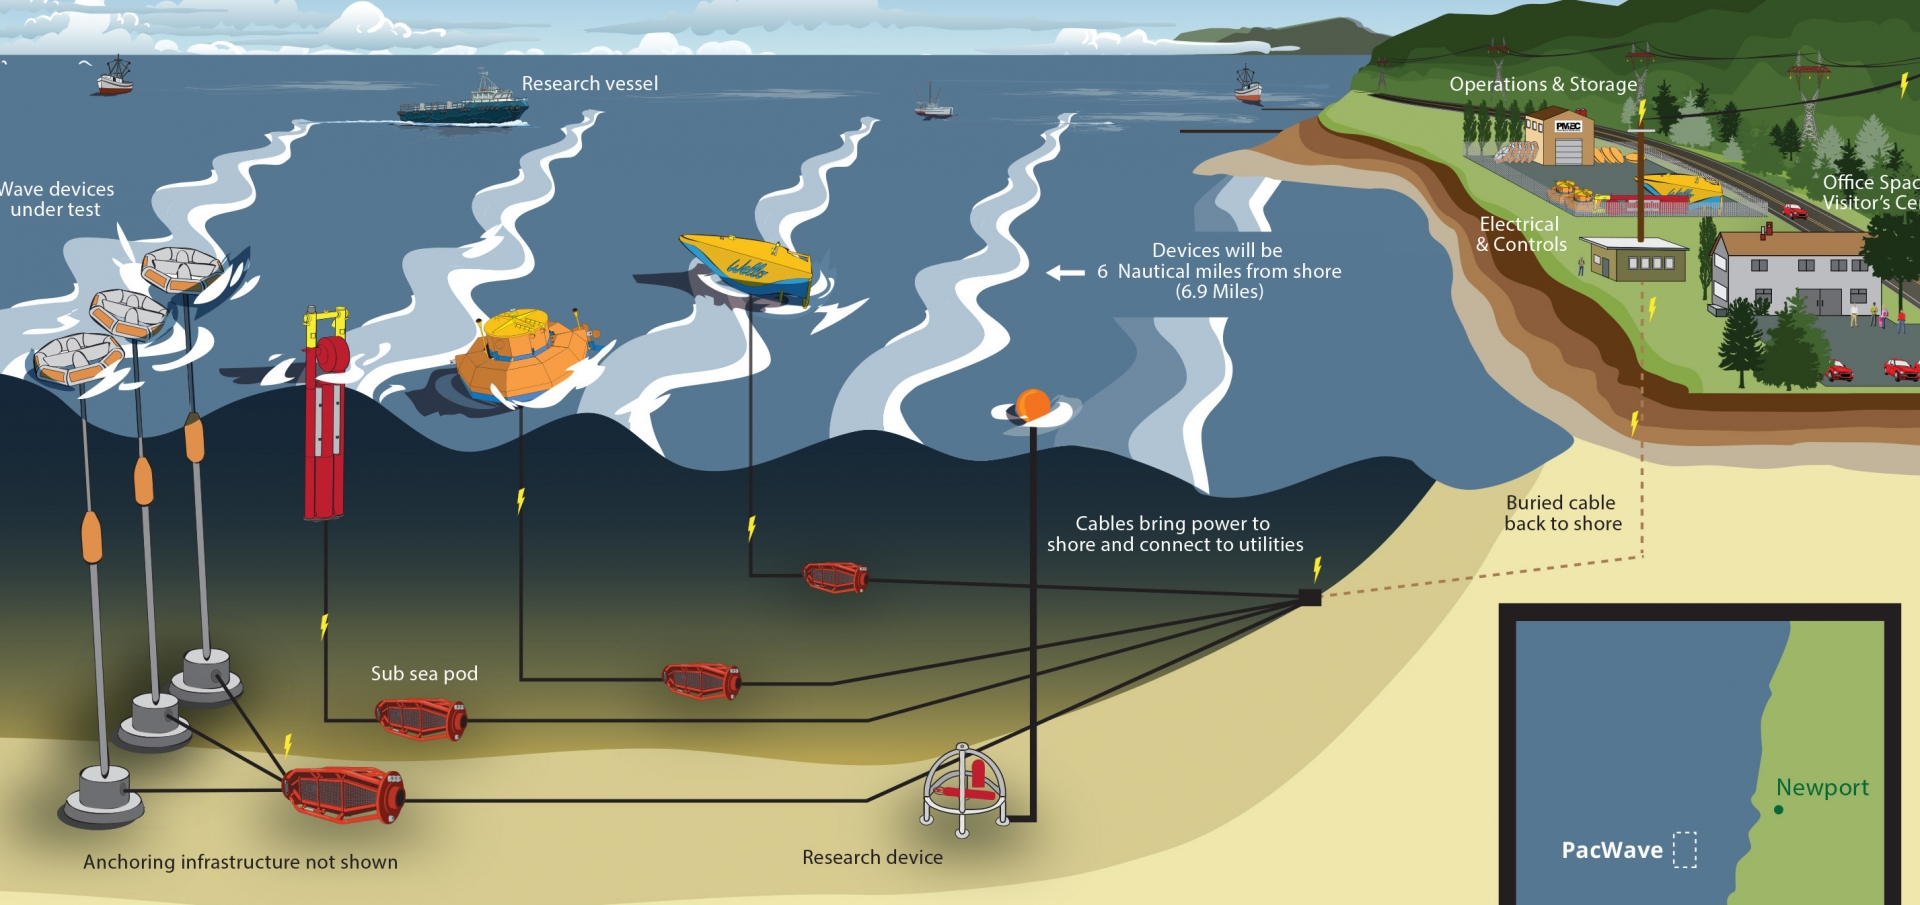 PacWave wave energy facility